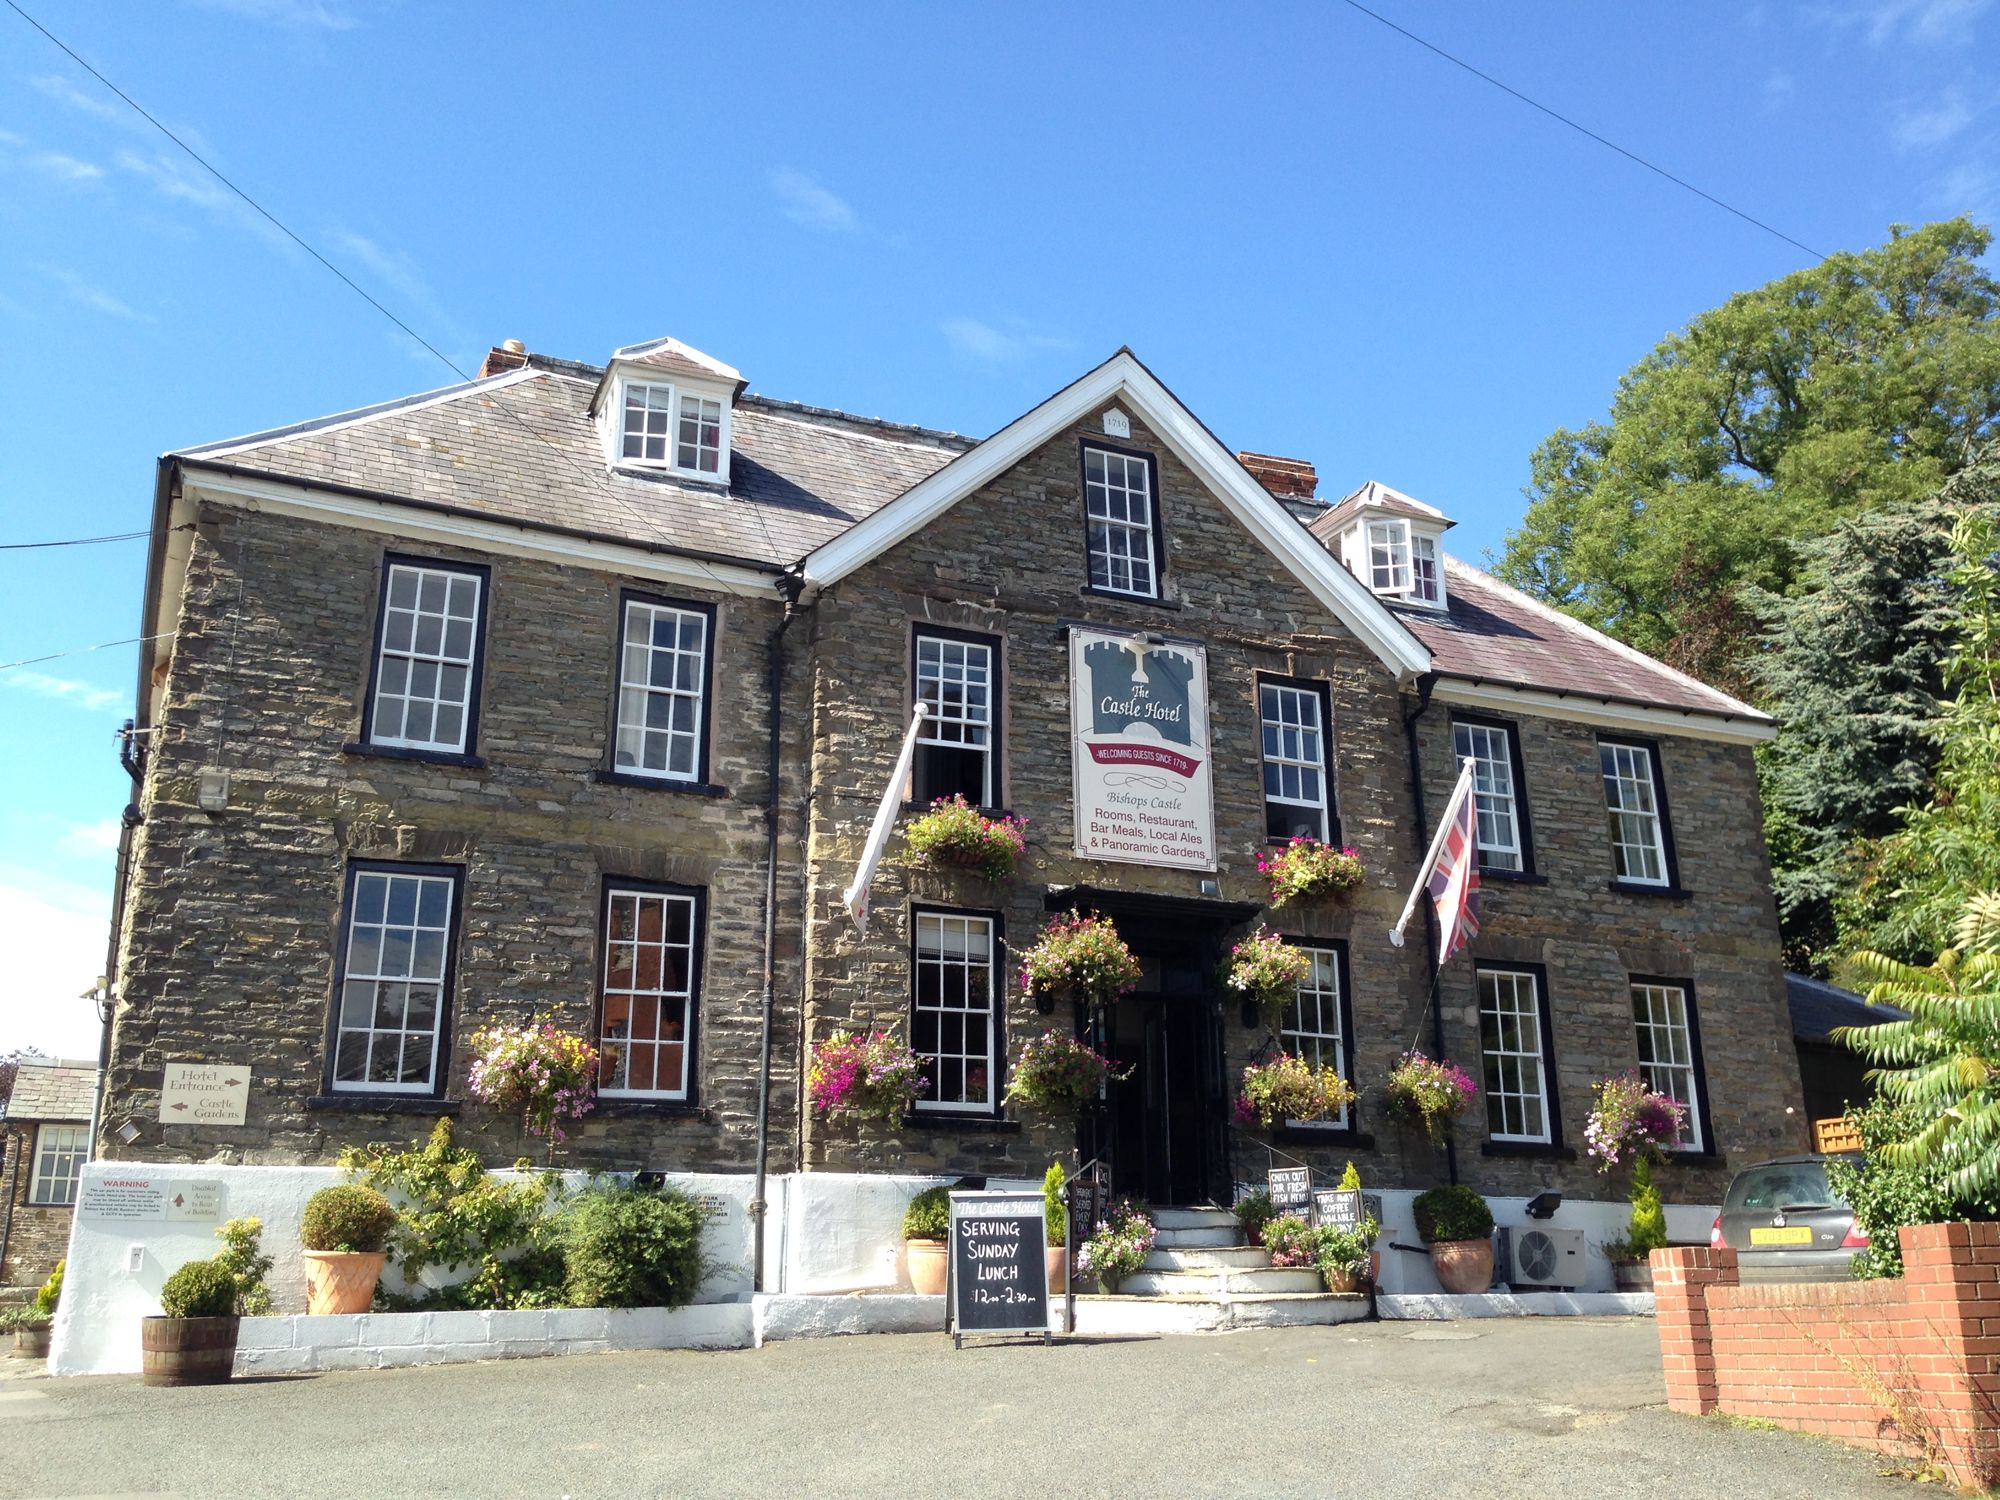 Hotels in Shropshire holidays at Cool Places